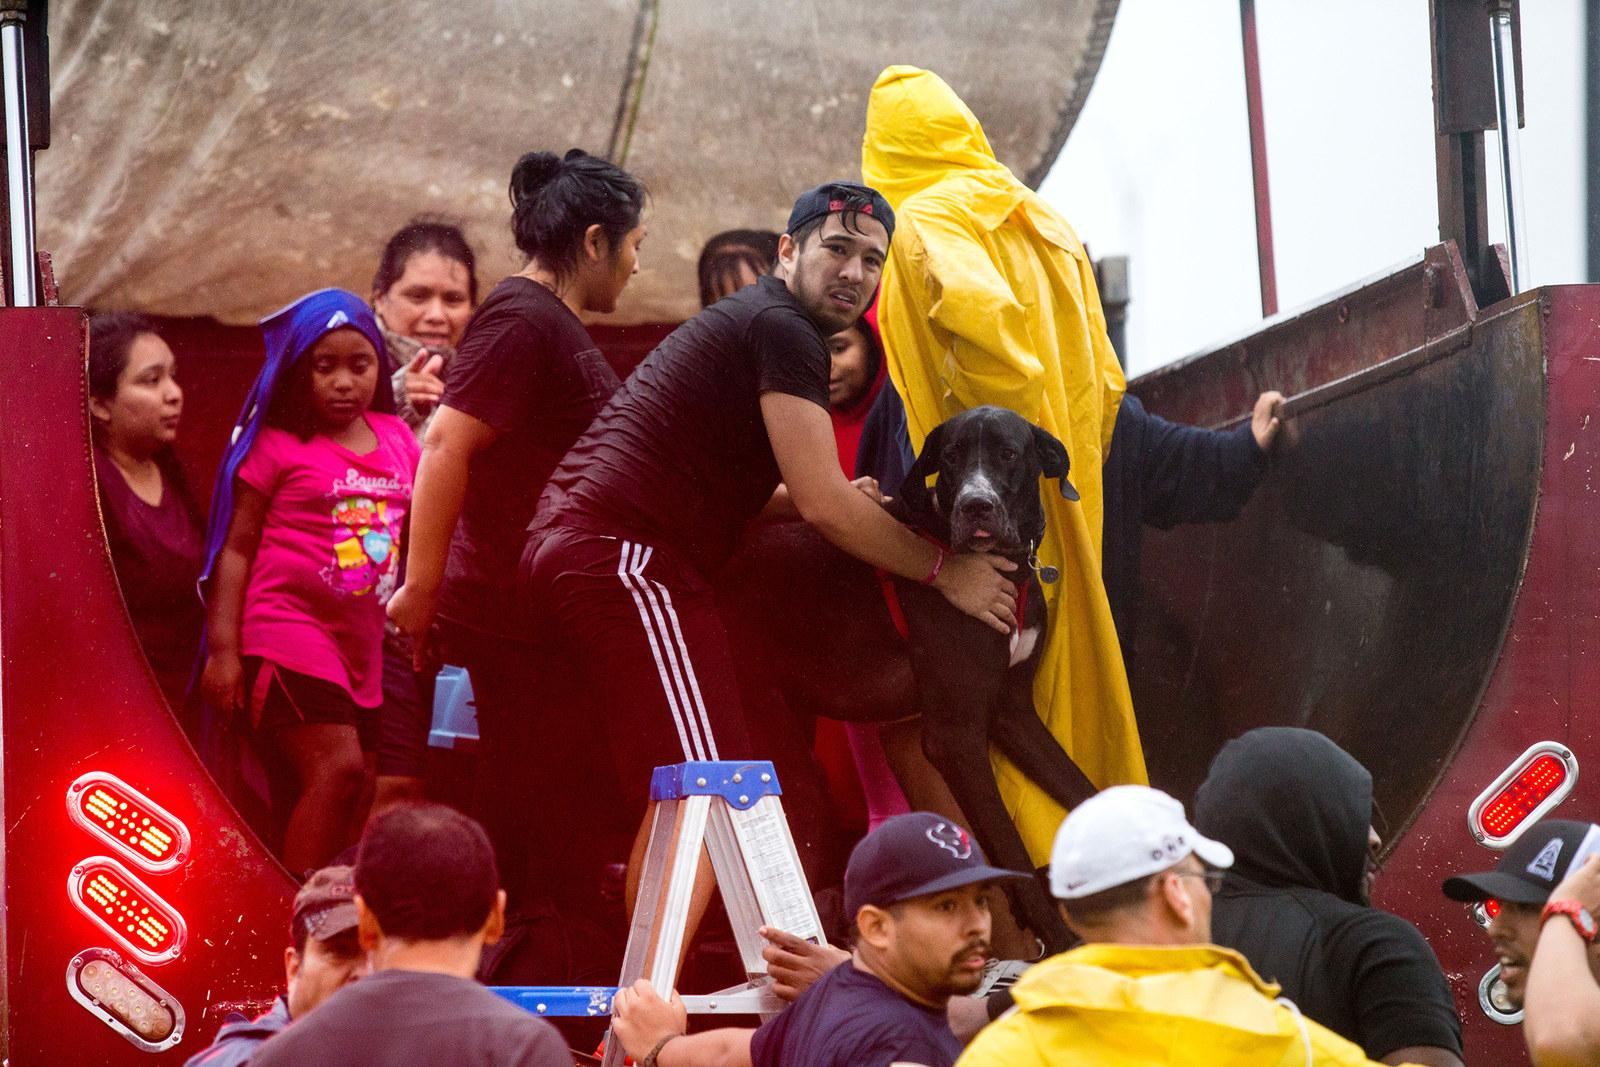 A flood victim holds his Great Dane after being rescued from his home in Houston on Aug. 28.